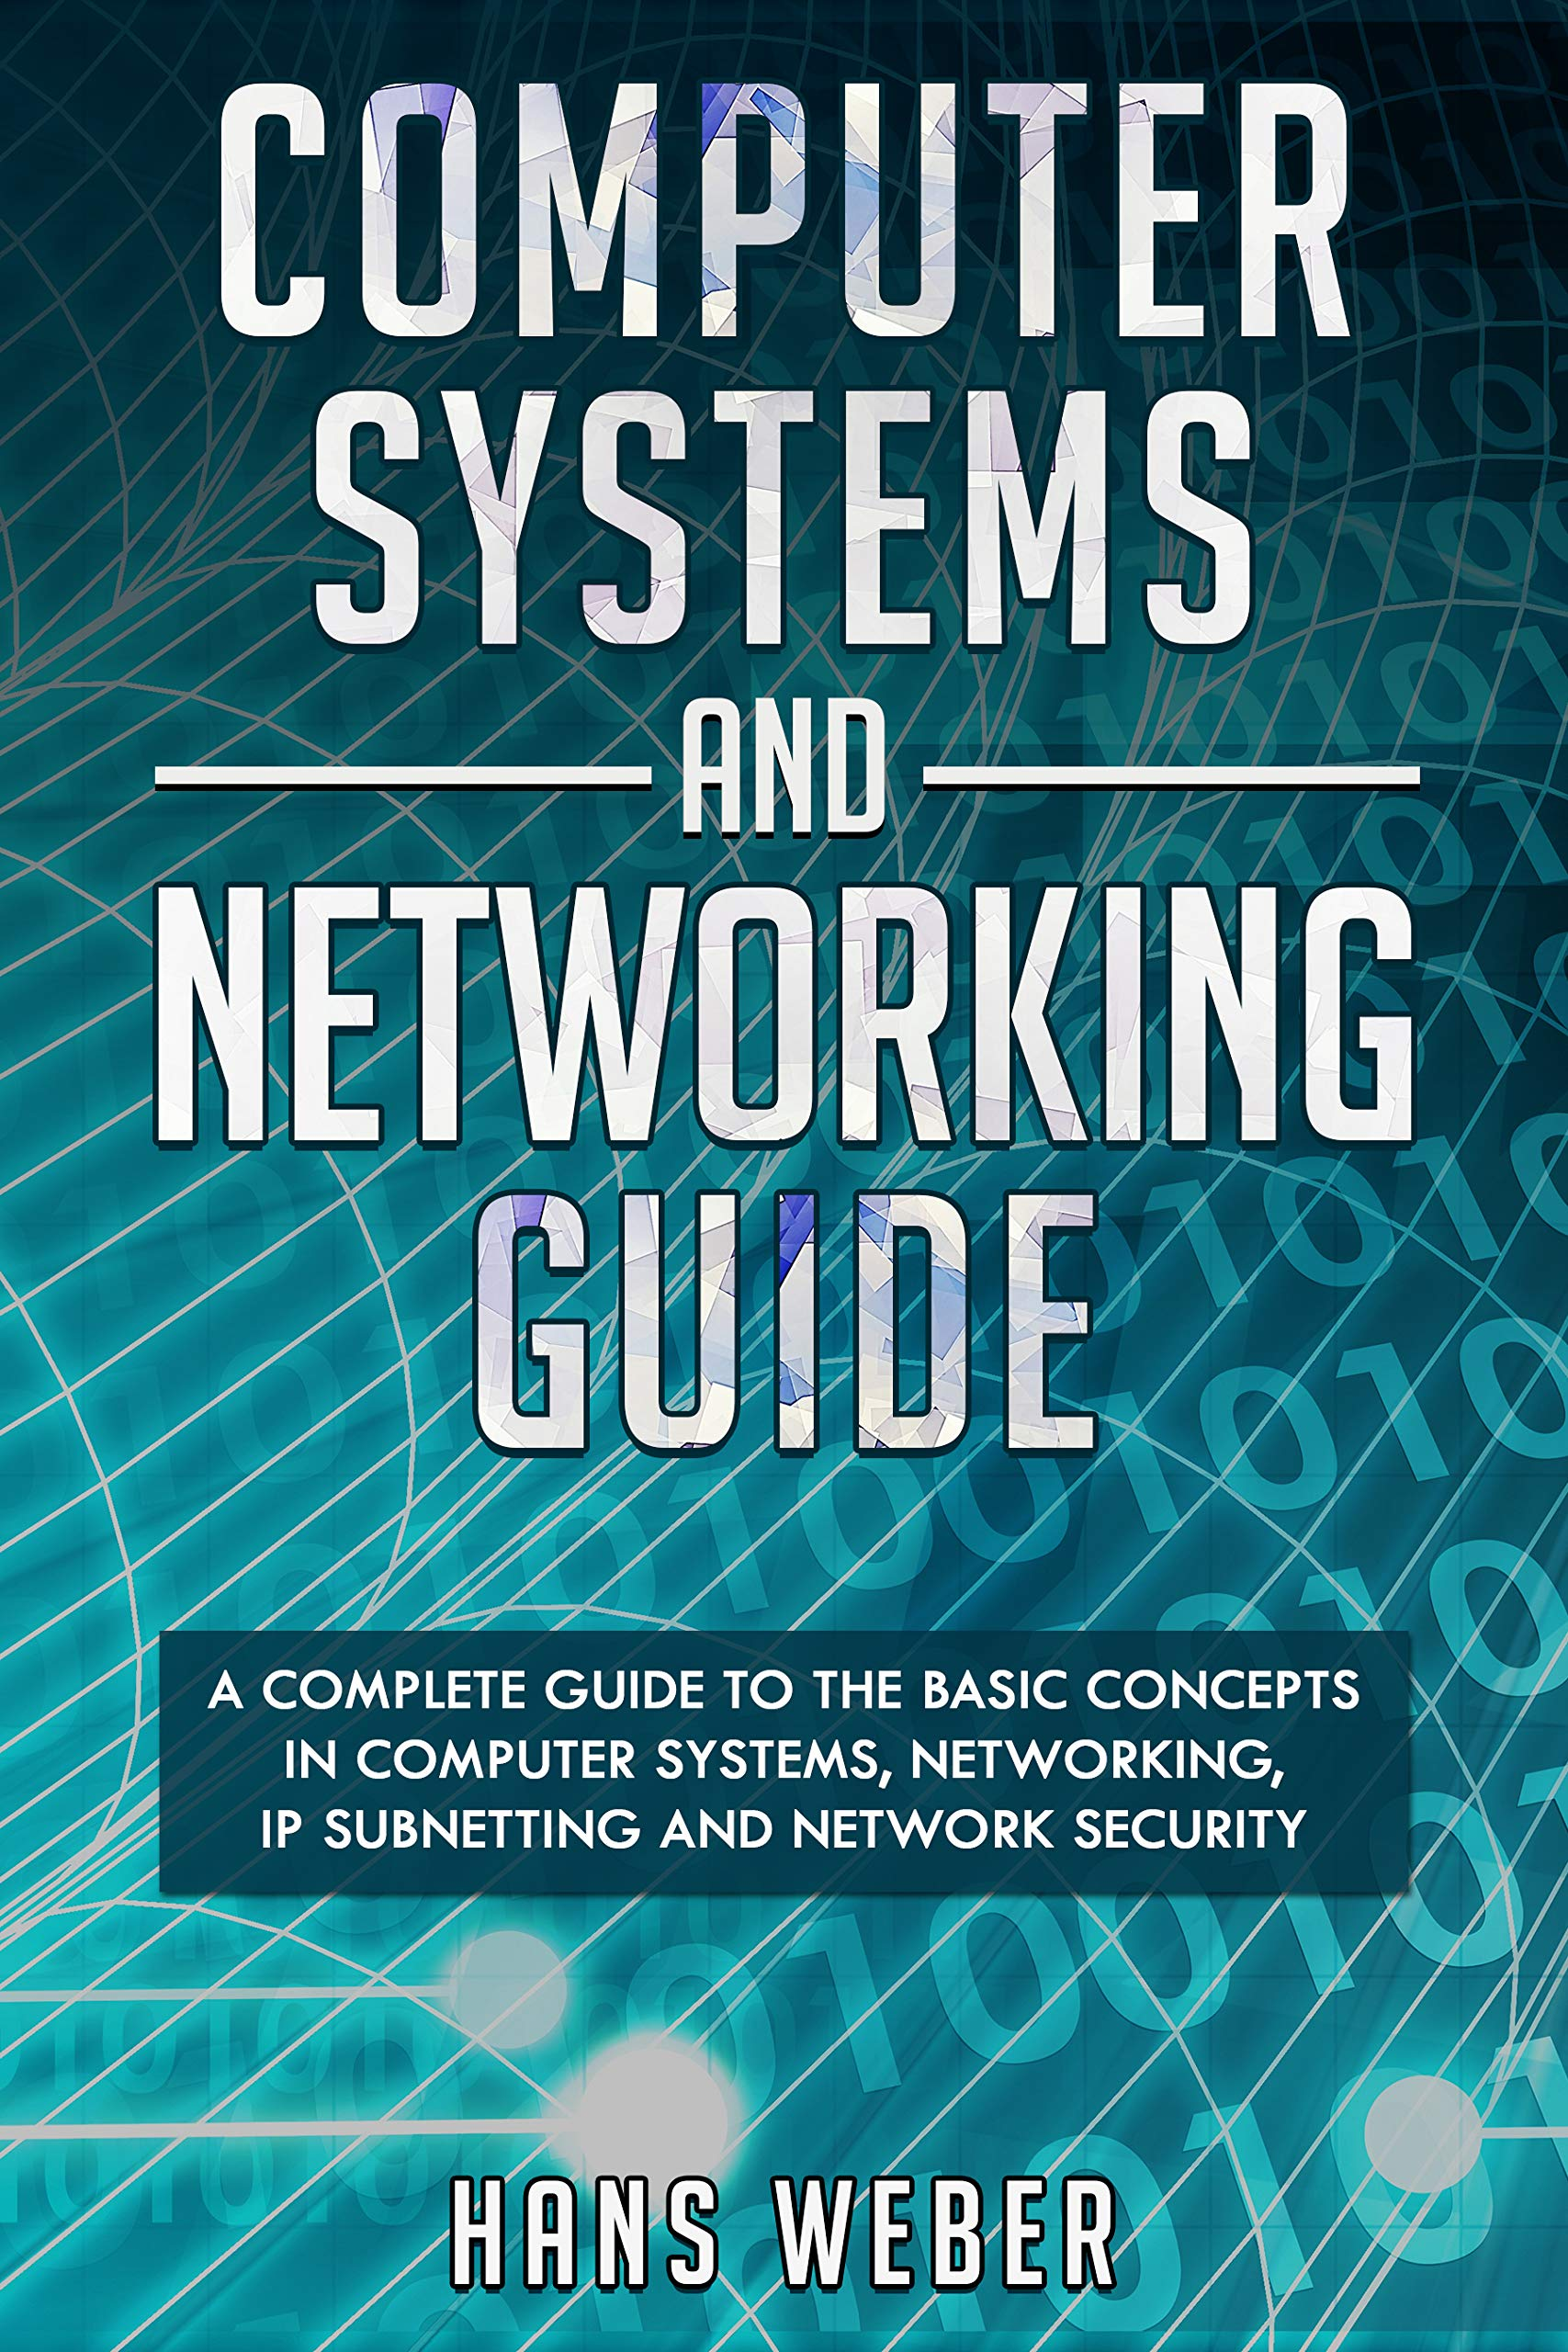 Computer Systems And Networking Guide  A Complete Guide To The Basic Concepts In Computer Systems Networking IP Subnetting And Network Security  English Edition